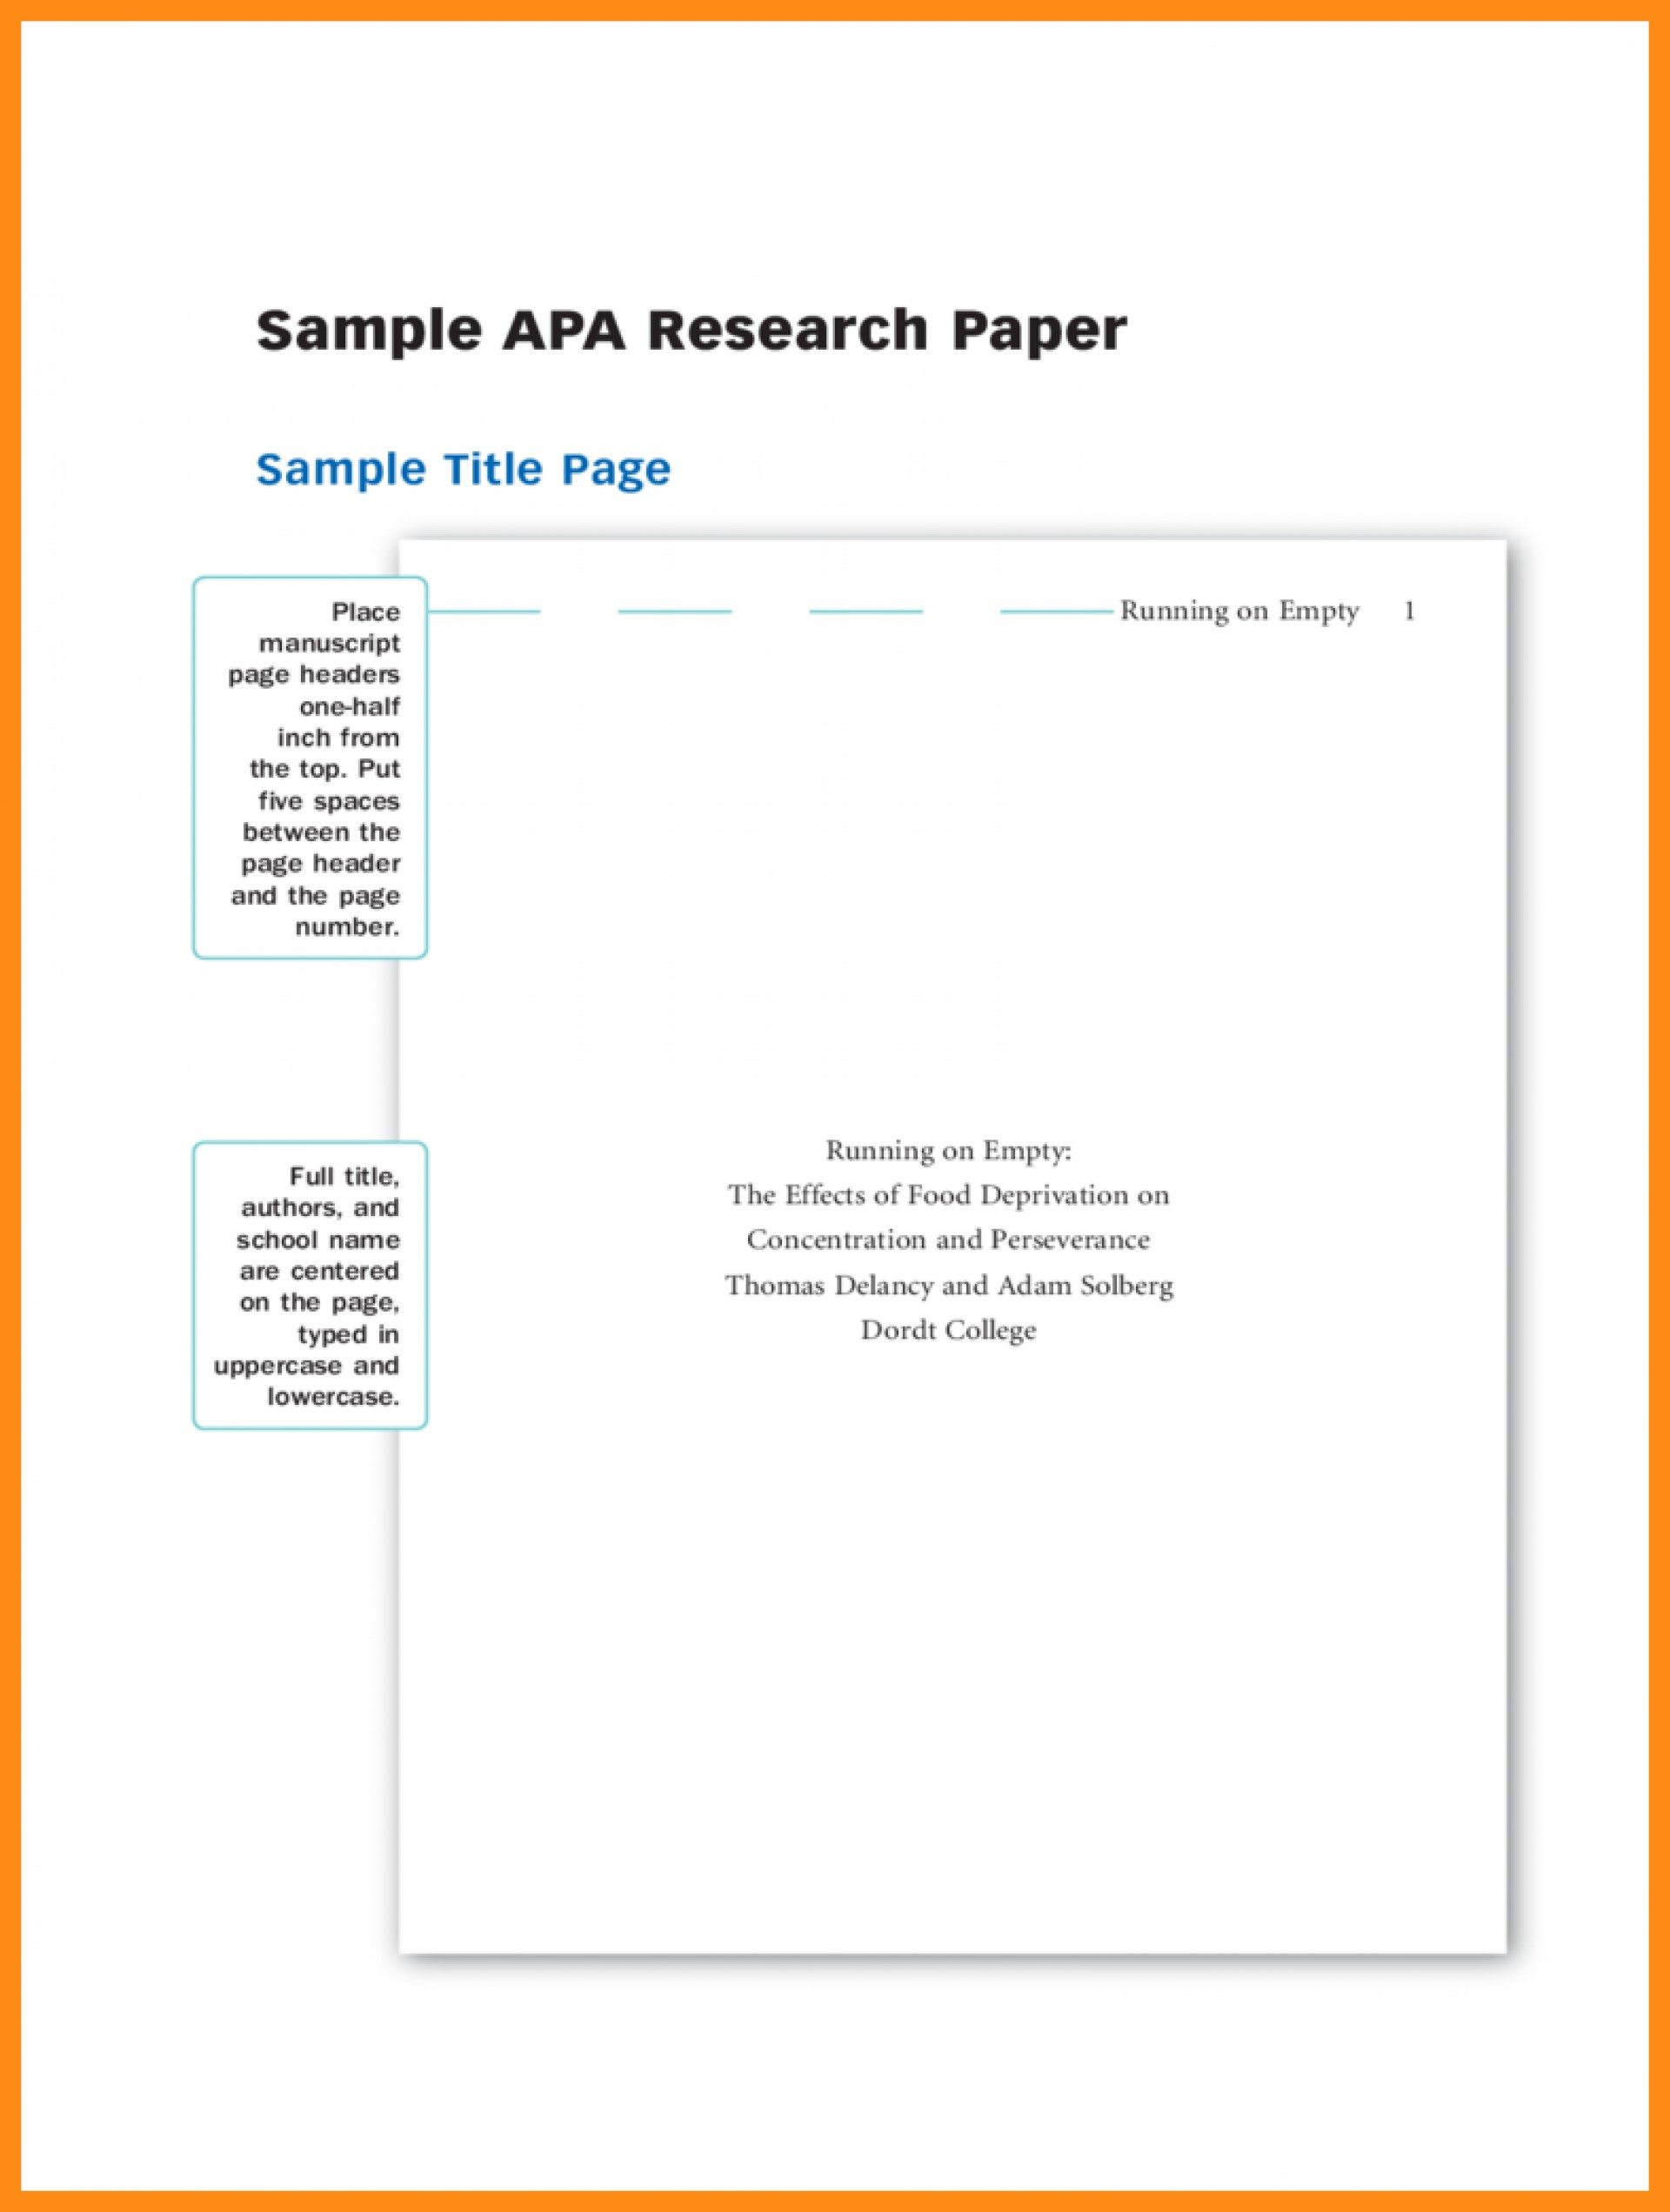 010 Cover Sheet Research Paper Samples Of Papers Apa Format Title Page Sample Dolap Magnetband Formidable For Doc Mla Example 1920